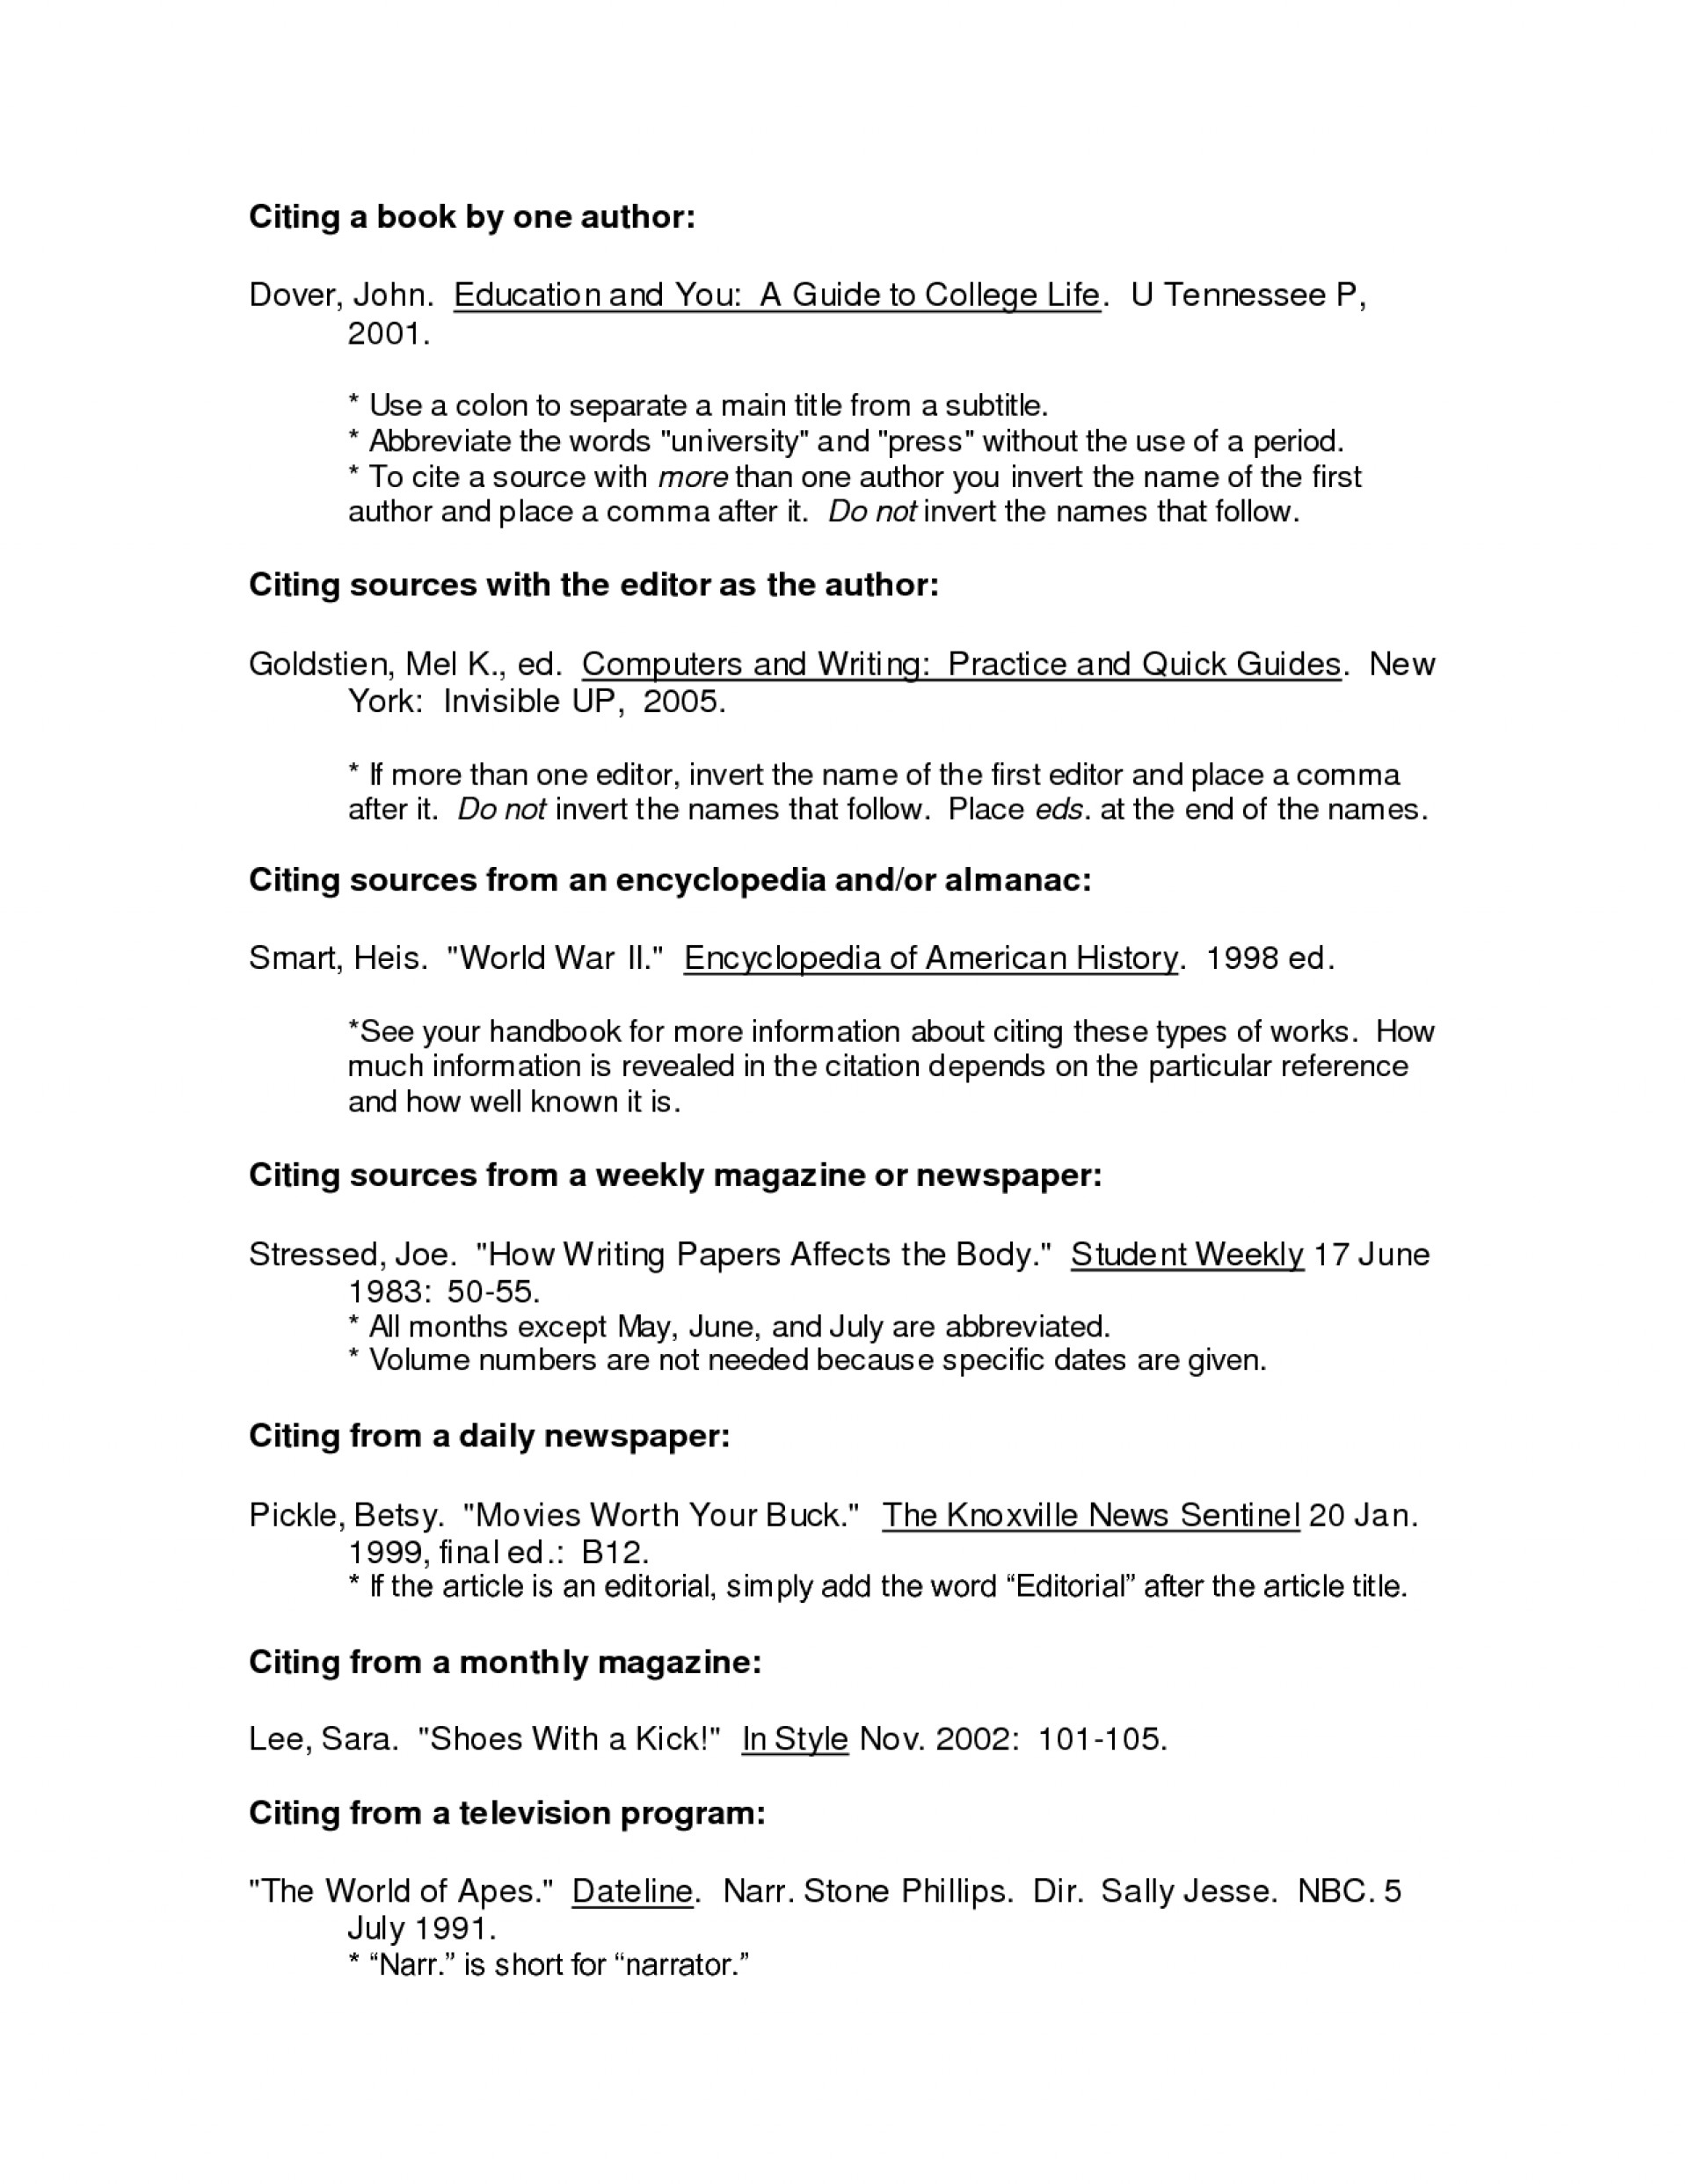 007 Bibliography Research Paper Sample Annotated For Dreaded Format Citing A 1920